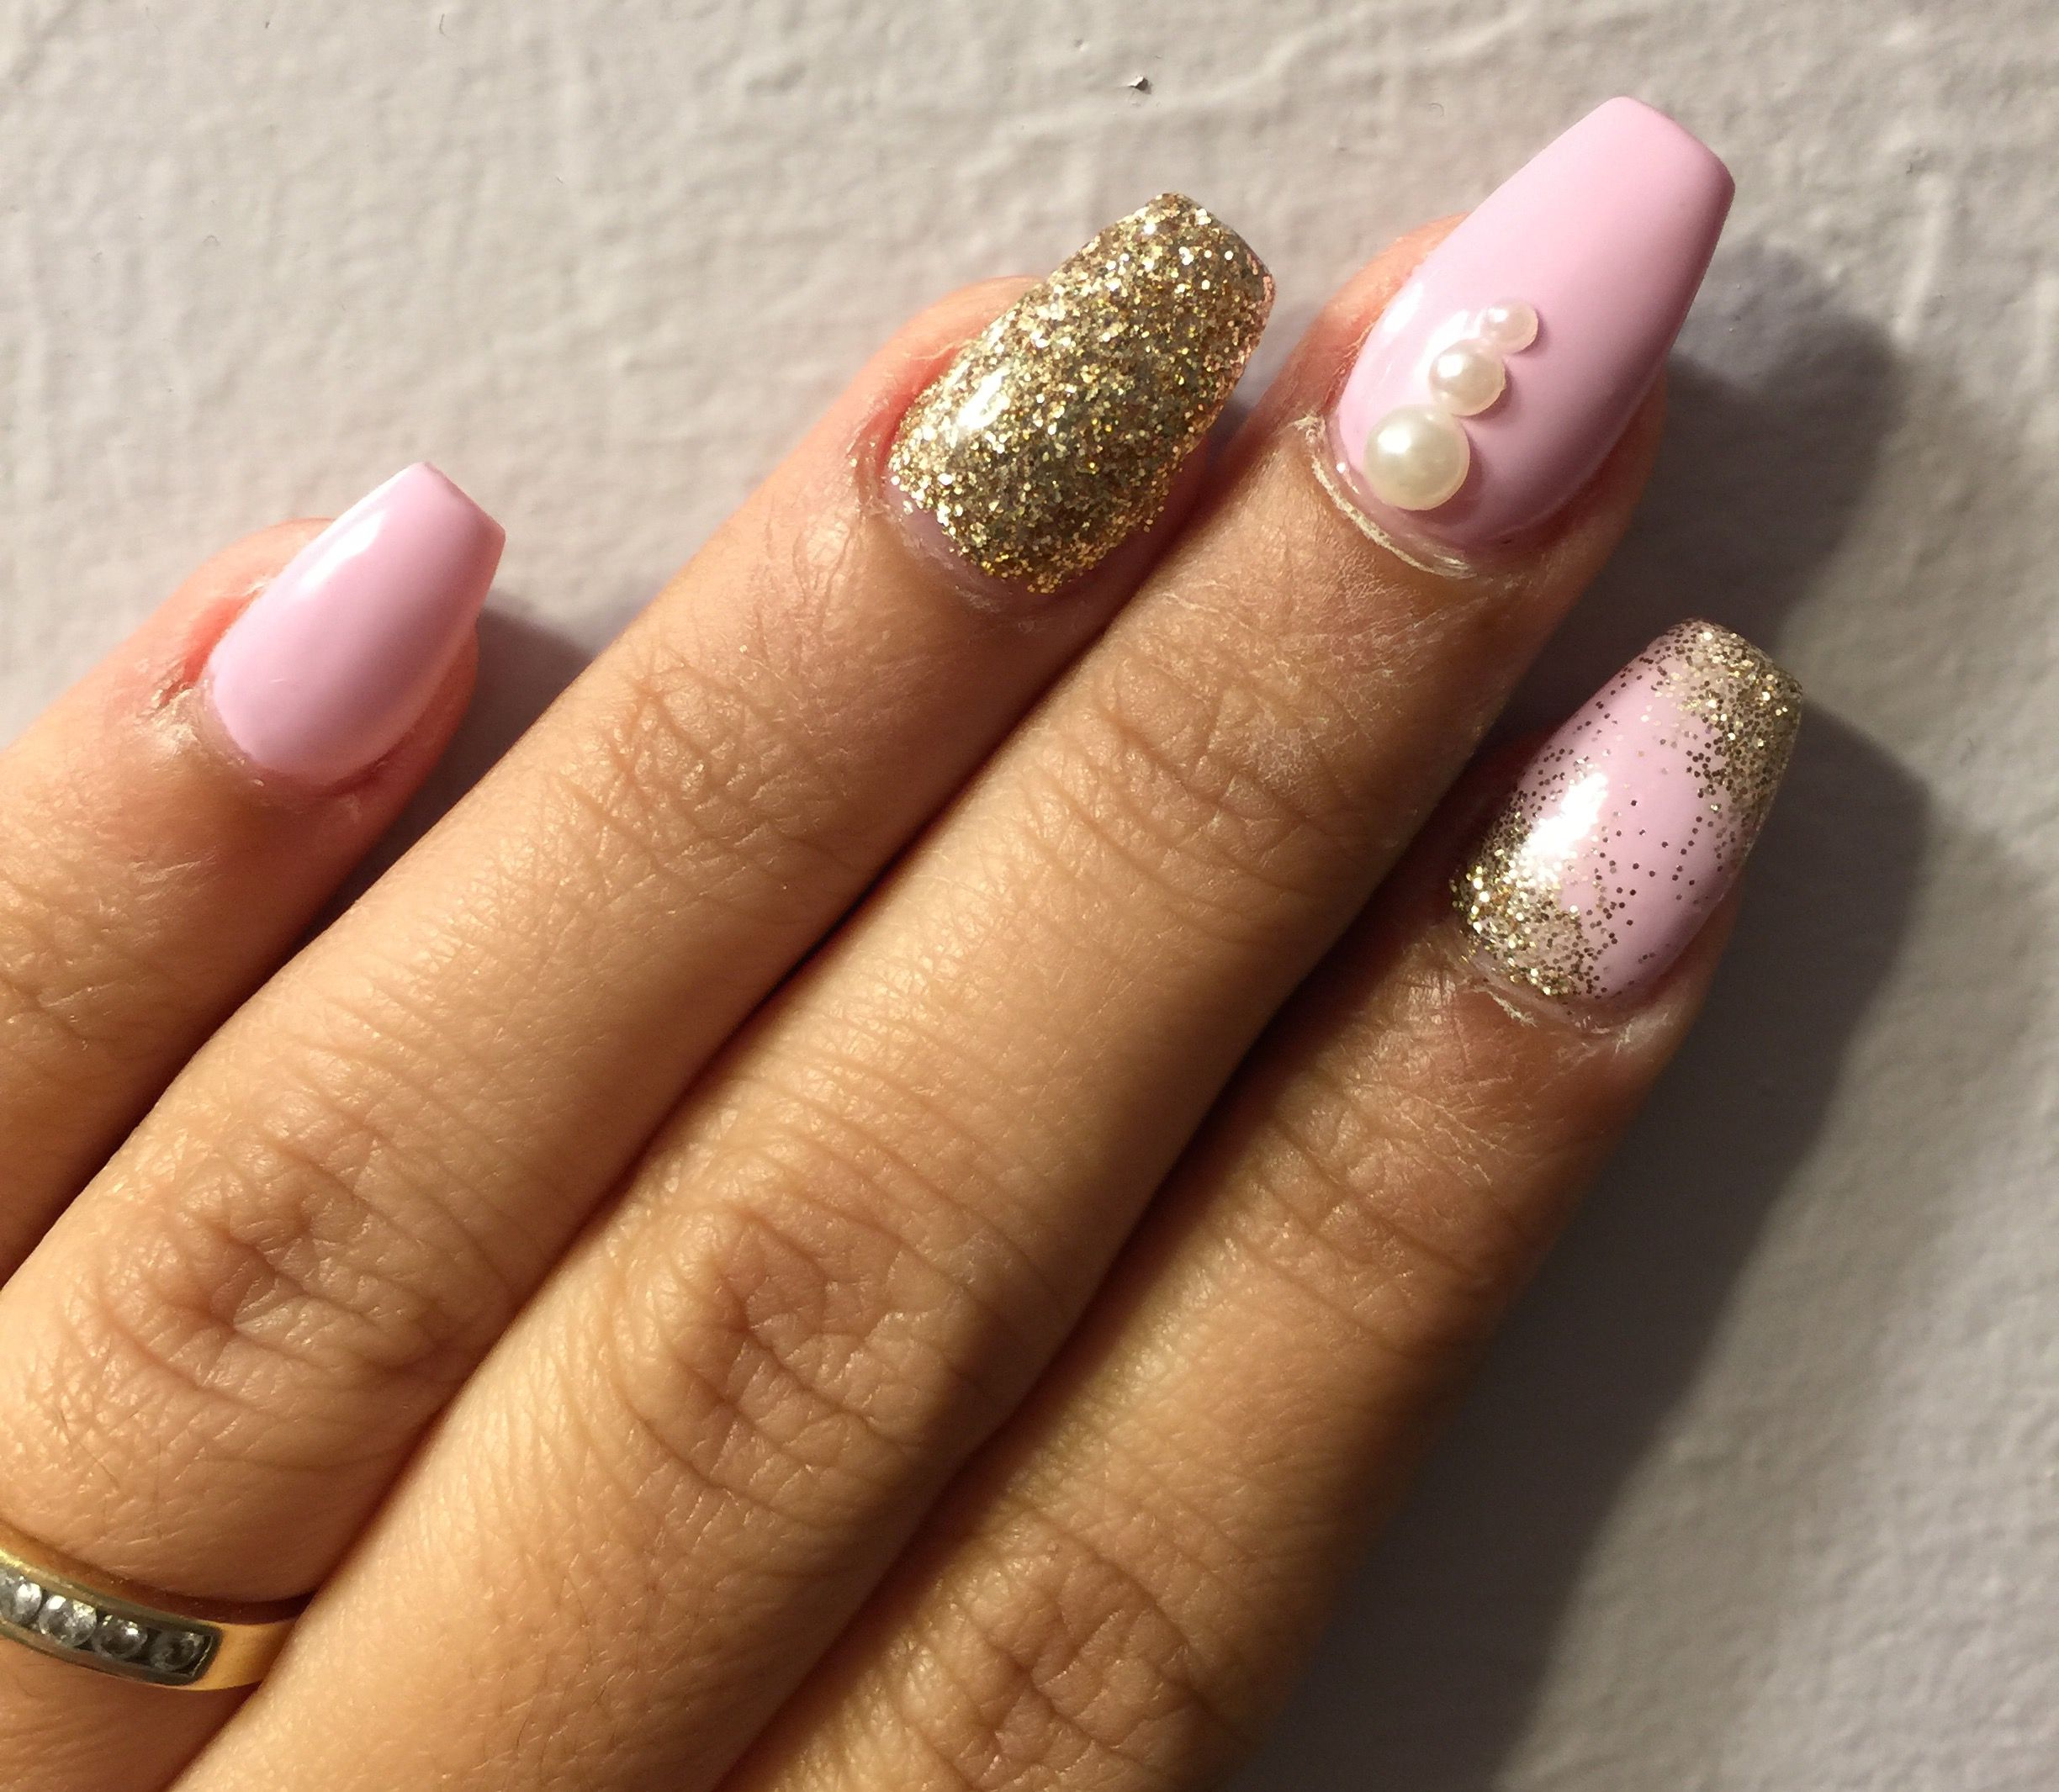 Pink Cake Pop Shellac With Champagne Gold Glitter And Pearls On Acrylic Nails Coffin Shape Nail Designs Nails Nail Inspo